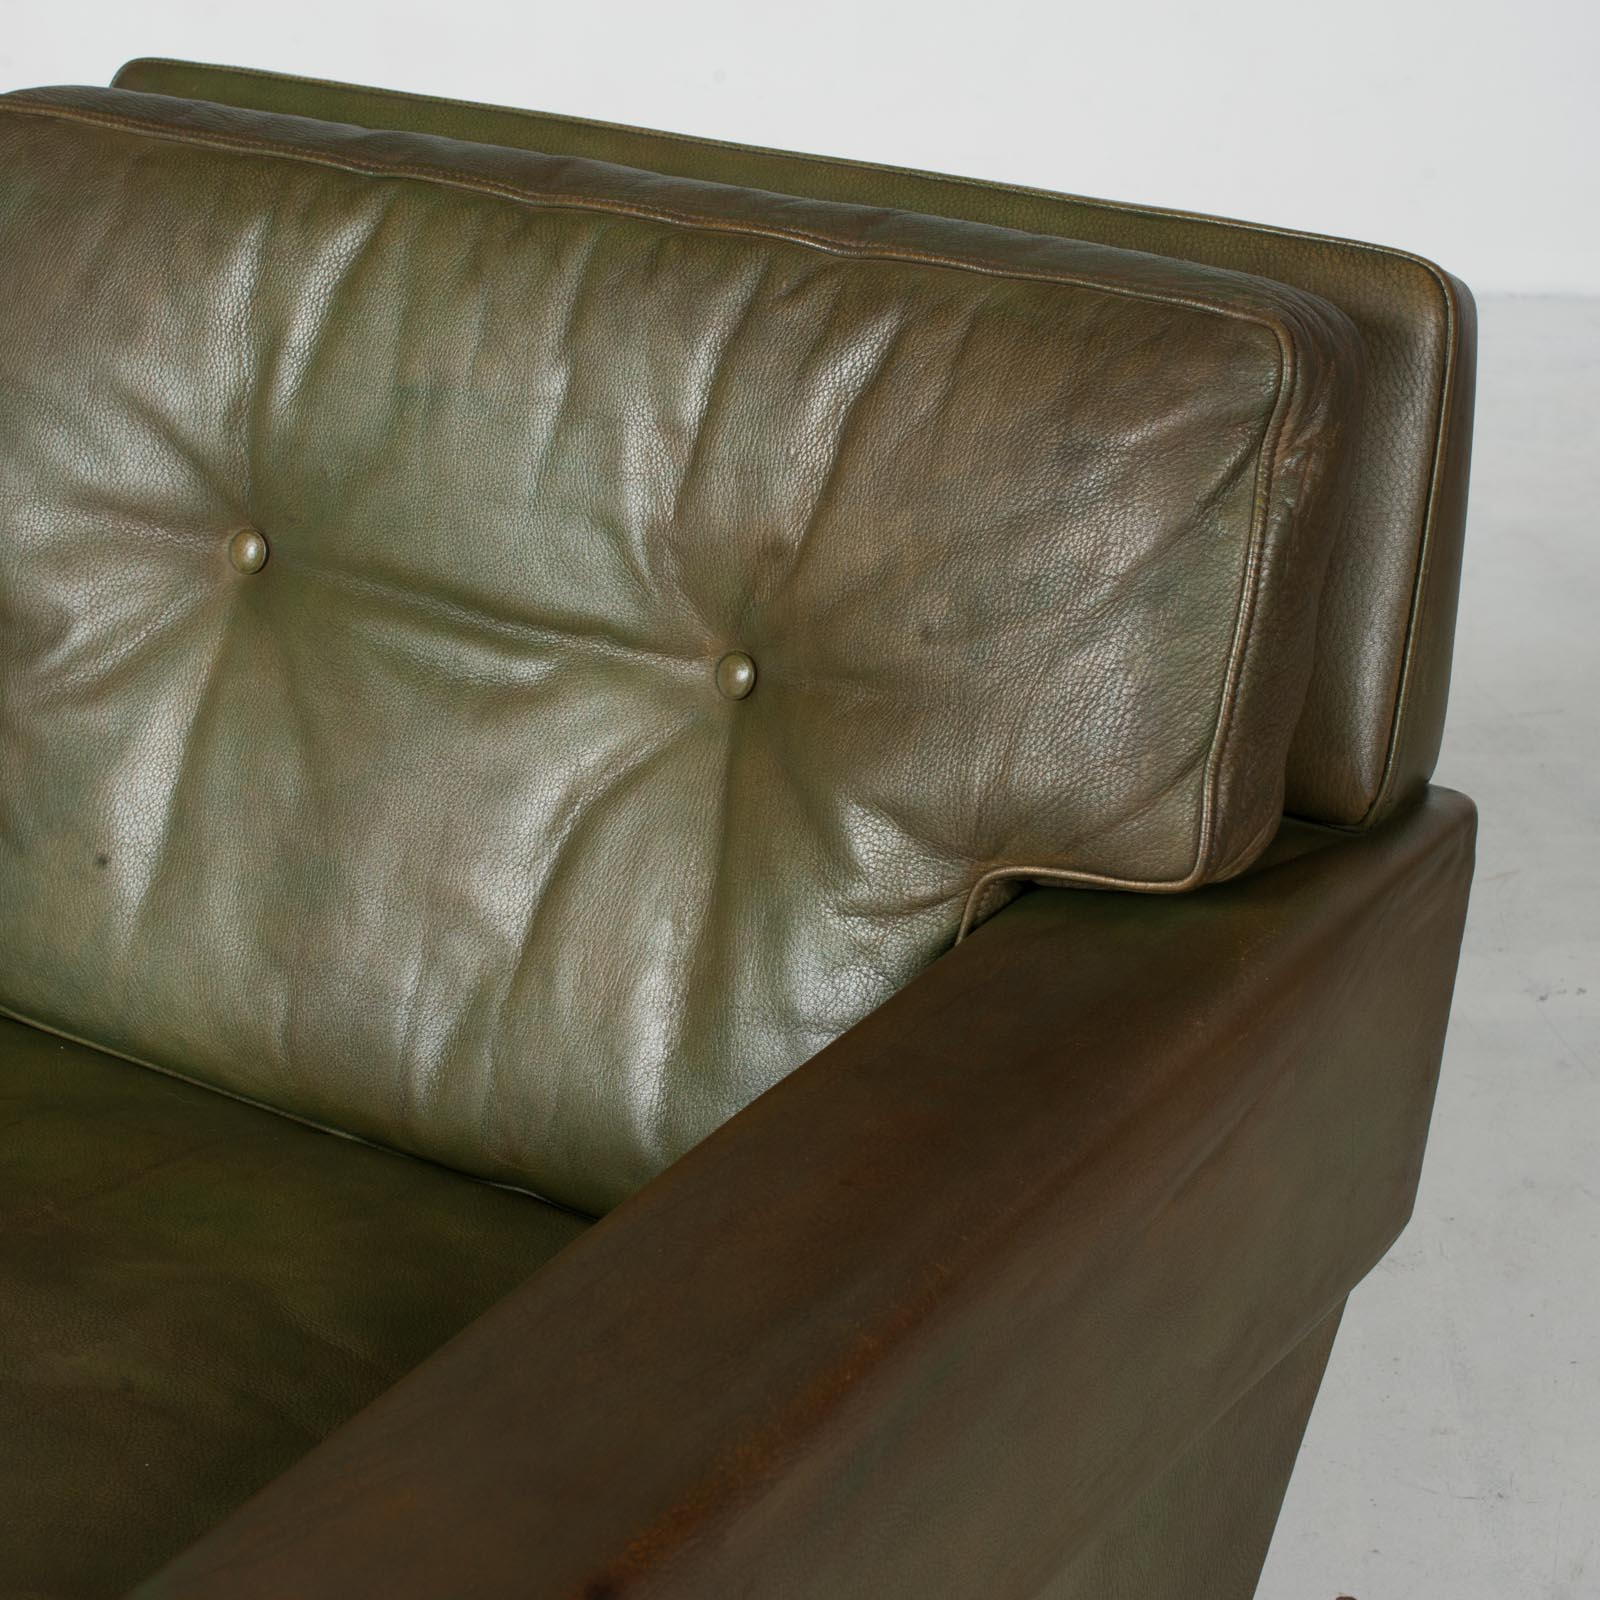 2 Armchairs In Olive Leather 1960s Denmark 7